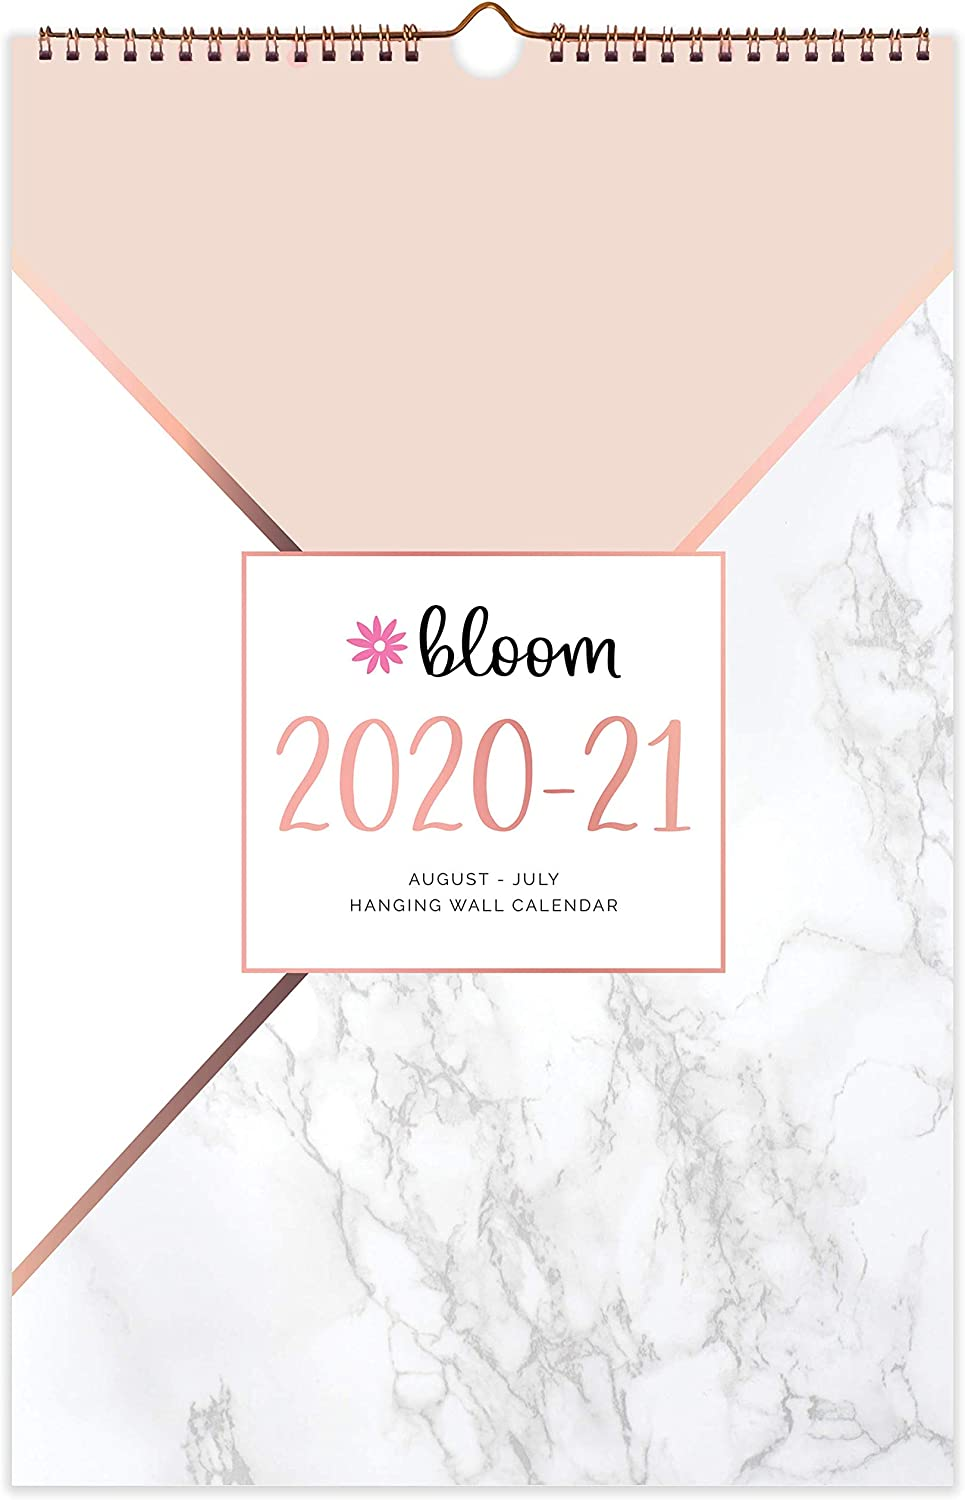 "bloom daily planners 2020-2021 Academic Year Monthly Hanging Wall Calendar (August 2020 Through July 2021) - 11"" x 17"" - Seasonal Designs"